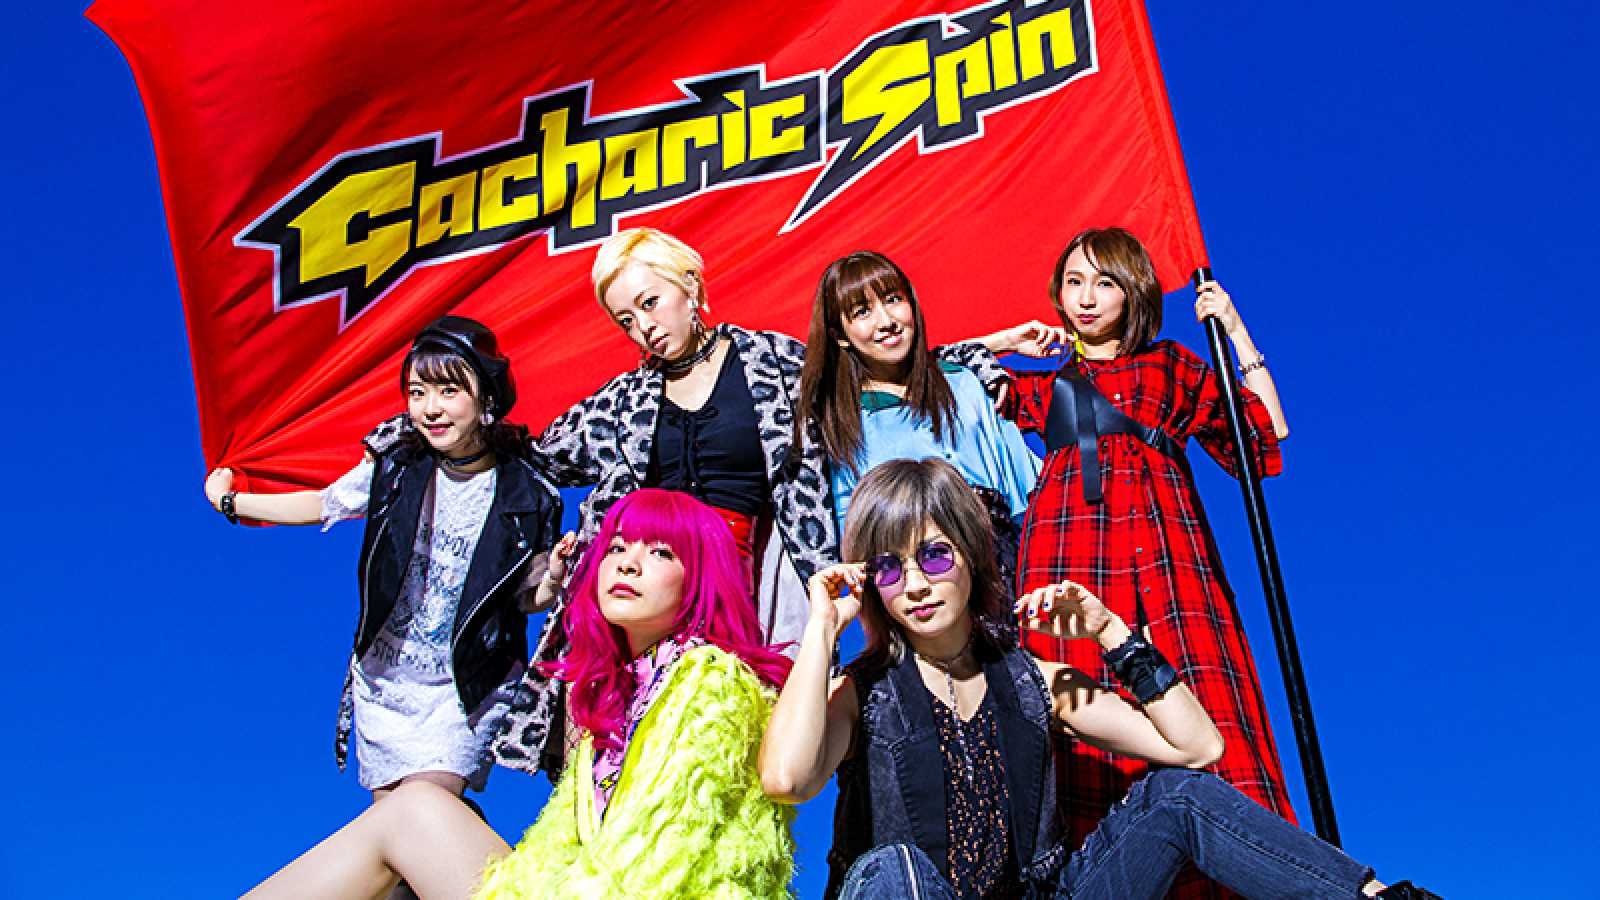 Gacharic Spin © Gacharic Spin. All Rights Reserved.